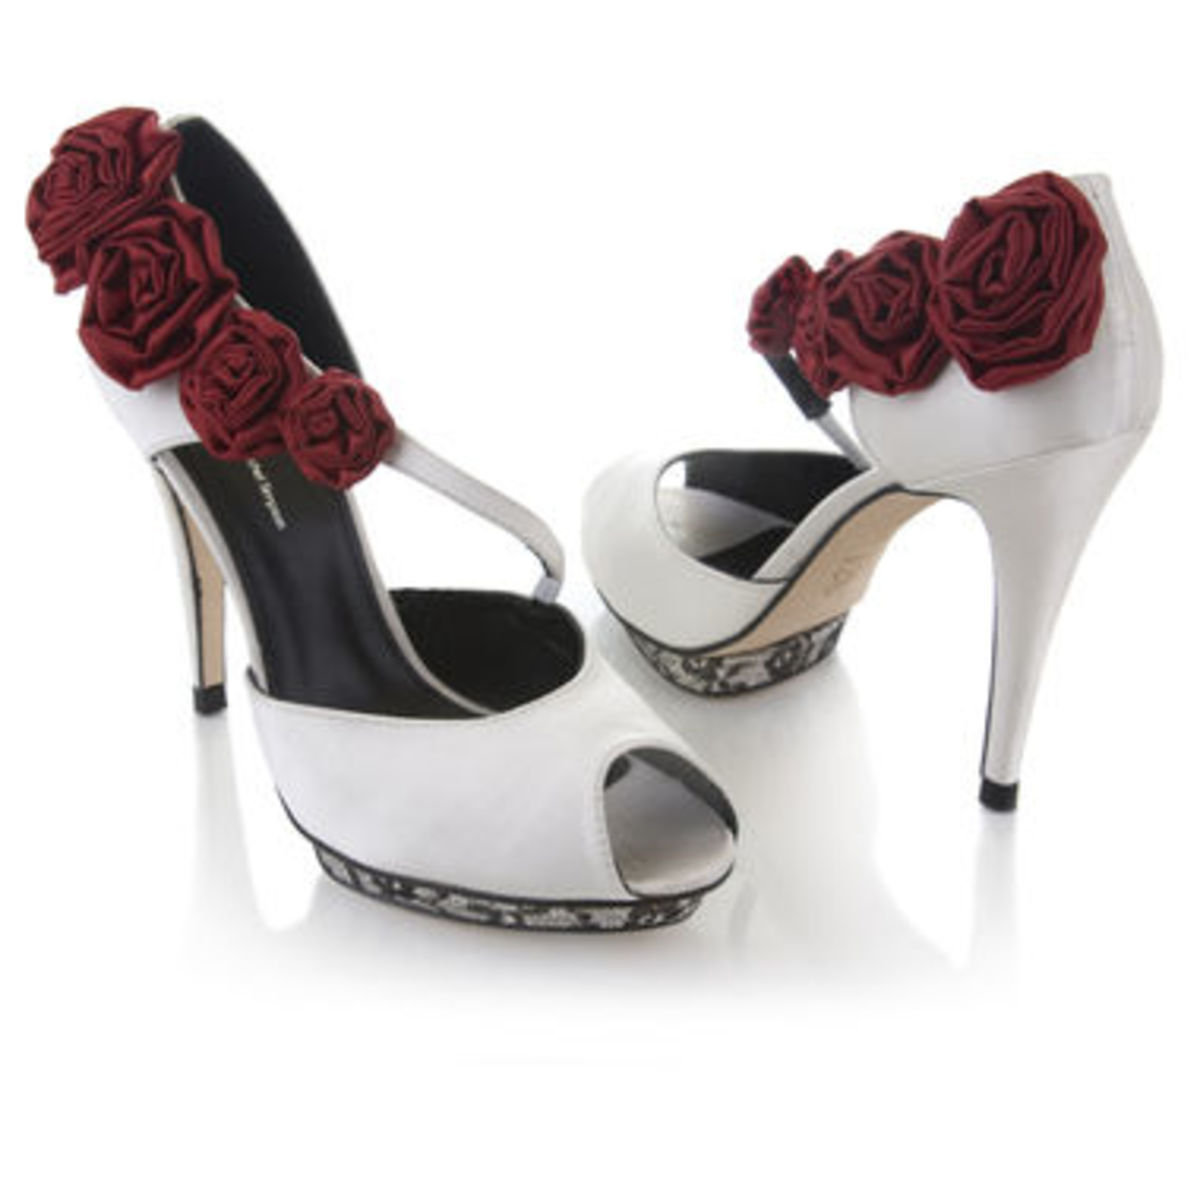 Funky shoes for a funky bride!